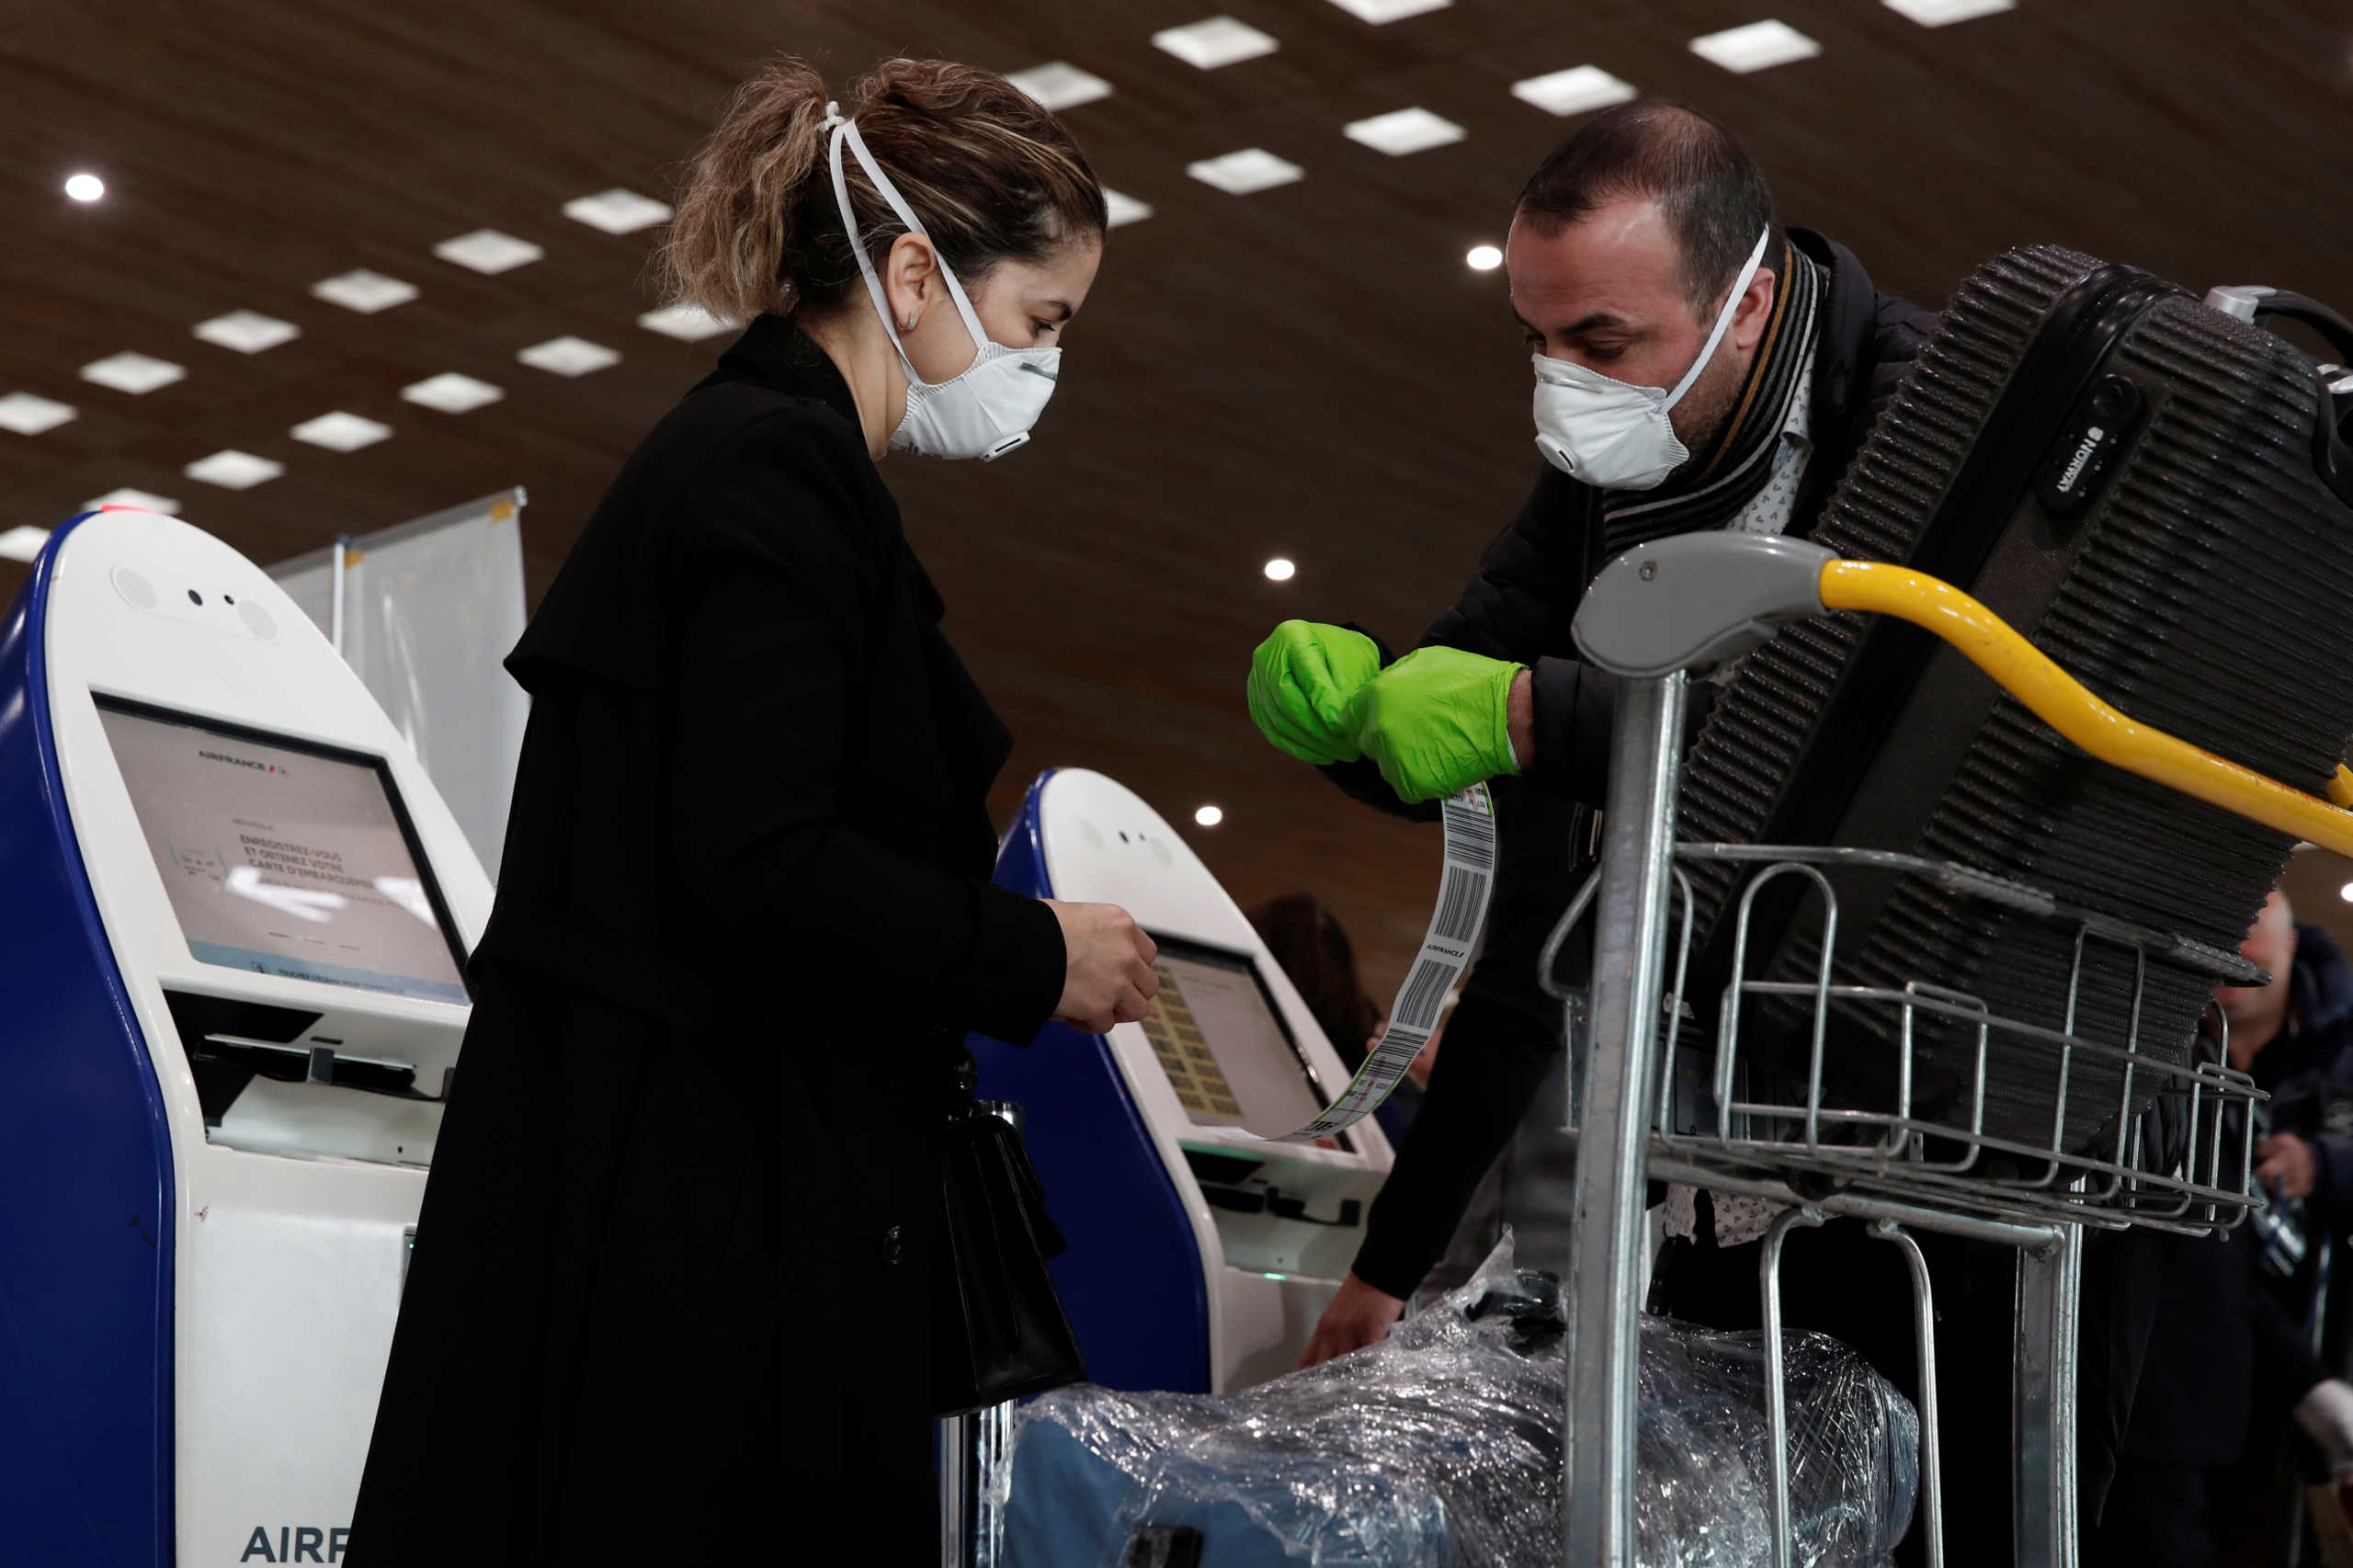 People wearing protective face masks and gloves check in luggage at the Air France desks inside Terminal 2E at Paris Charles de Gaulle airport in Roissy, after the U.S. banned travel from Europe, as France grapples with an outbreak of coronavirus disease (COVID-19), March 12, 2020.  REUTERS/Benoit Tessier